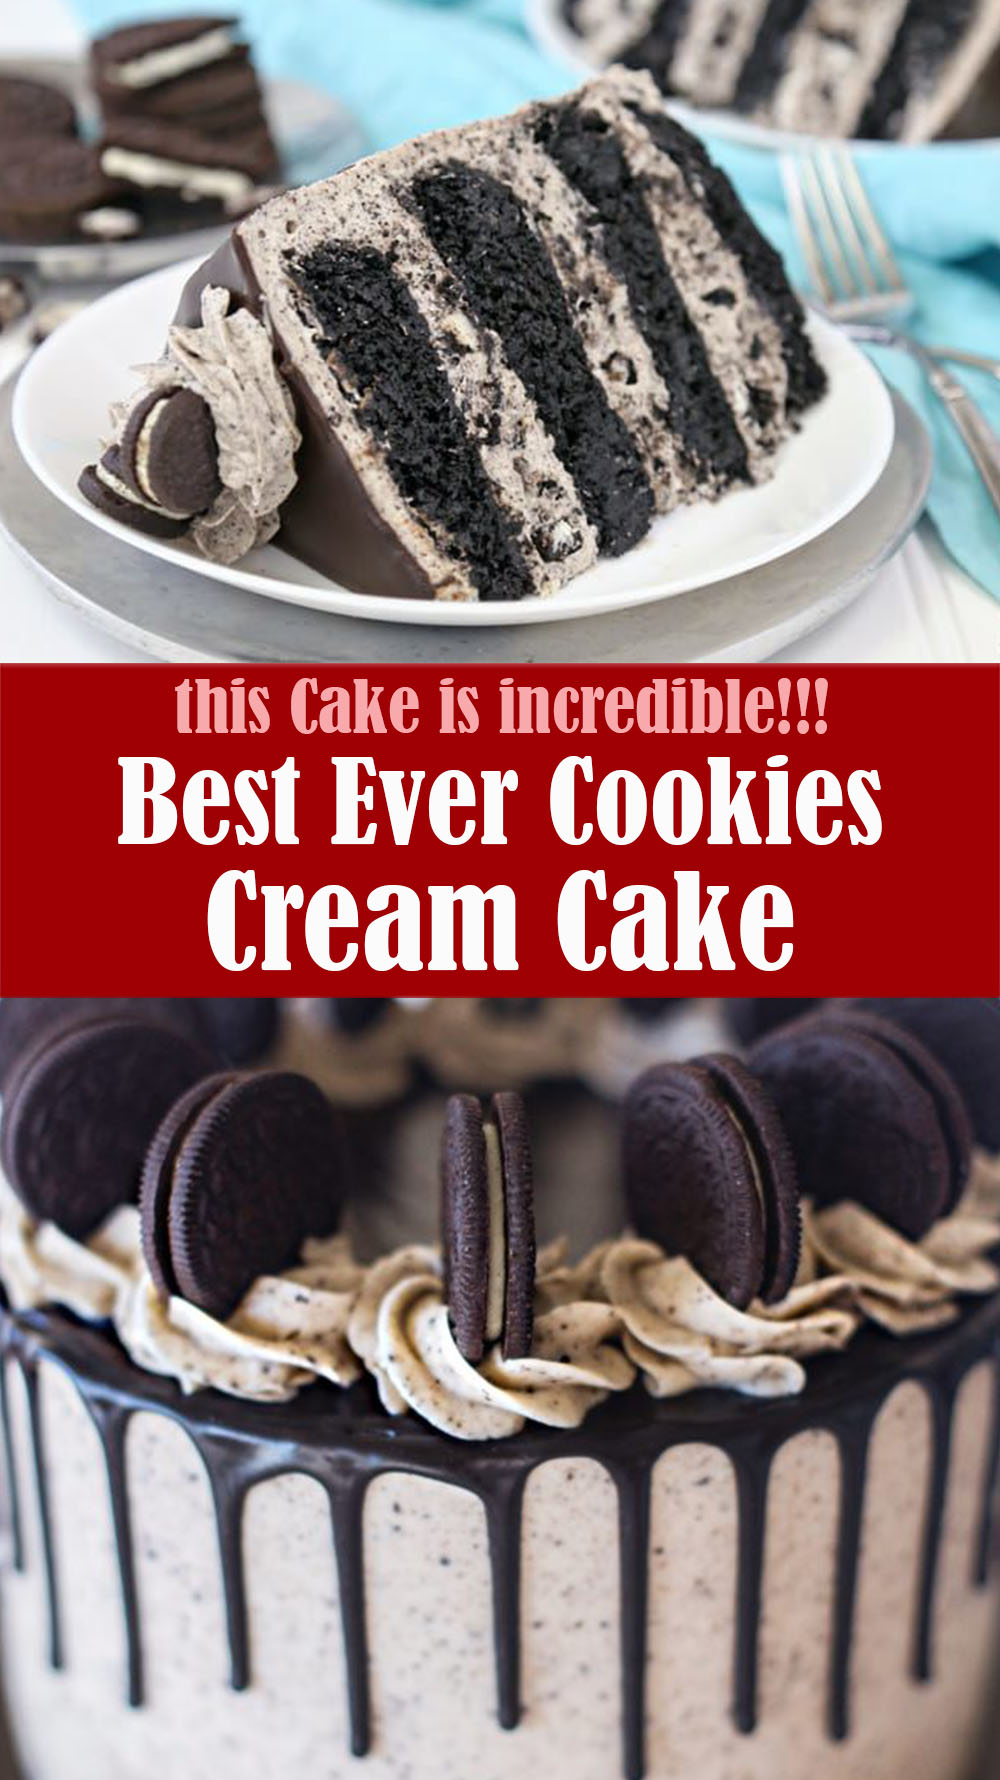 Best Ever Cookies and Cream Cake